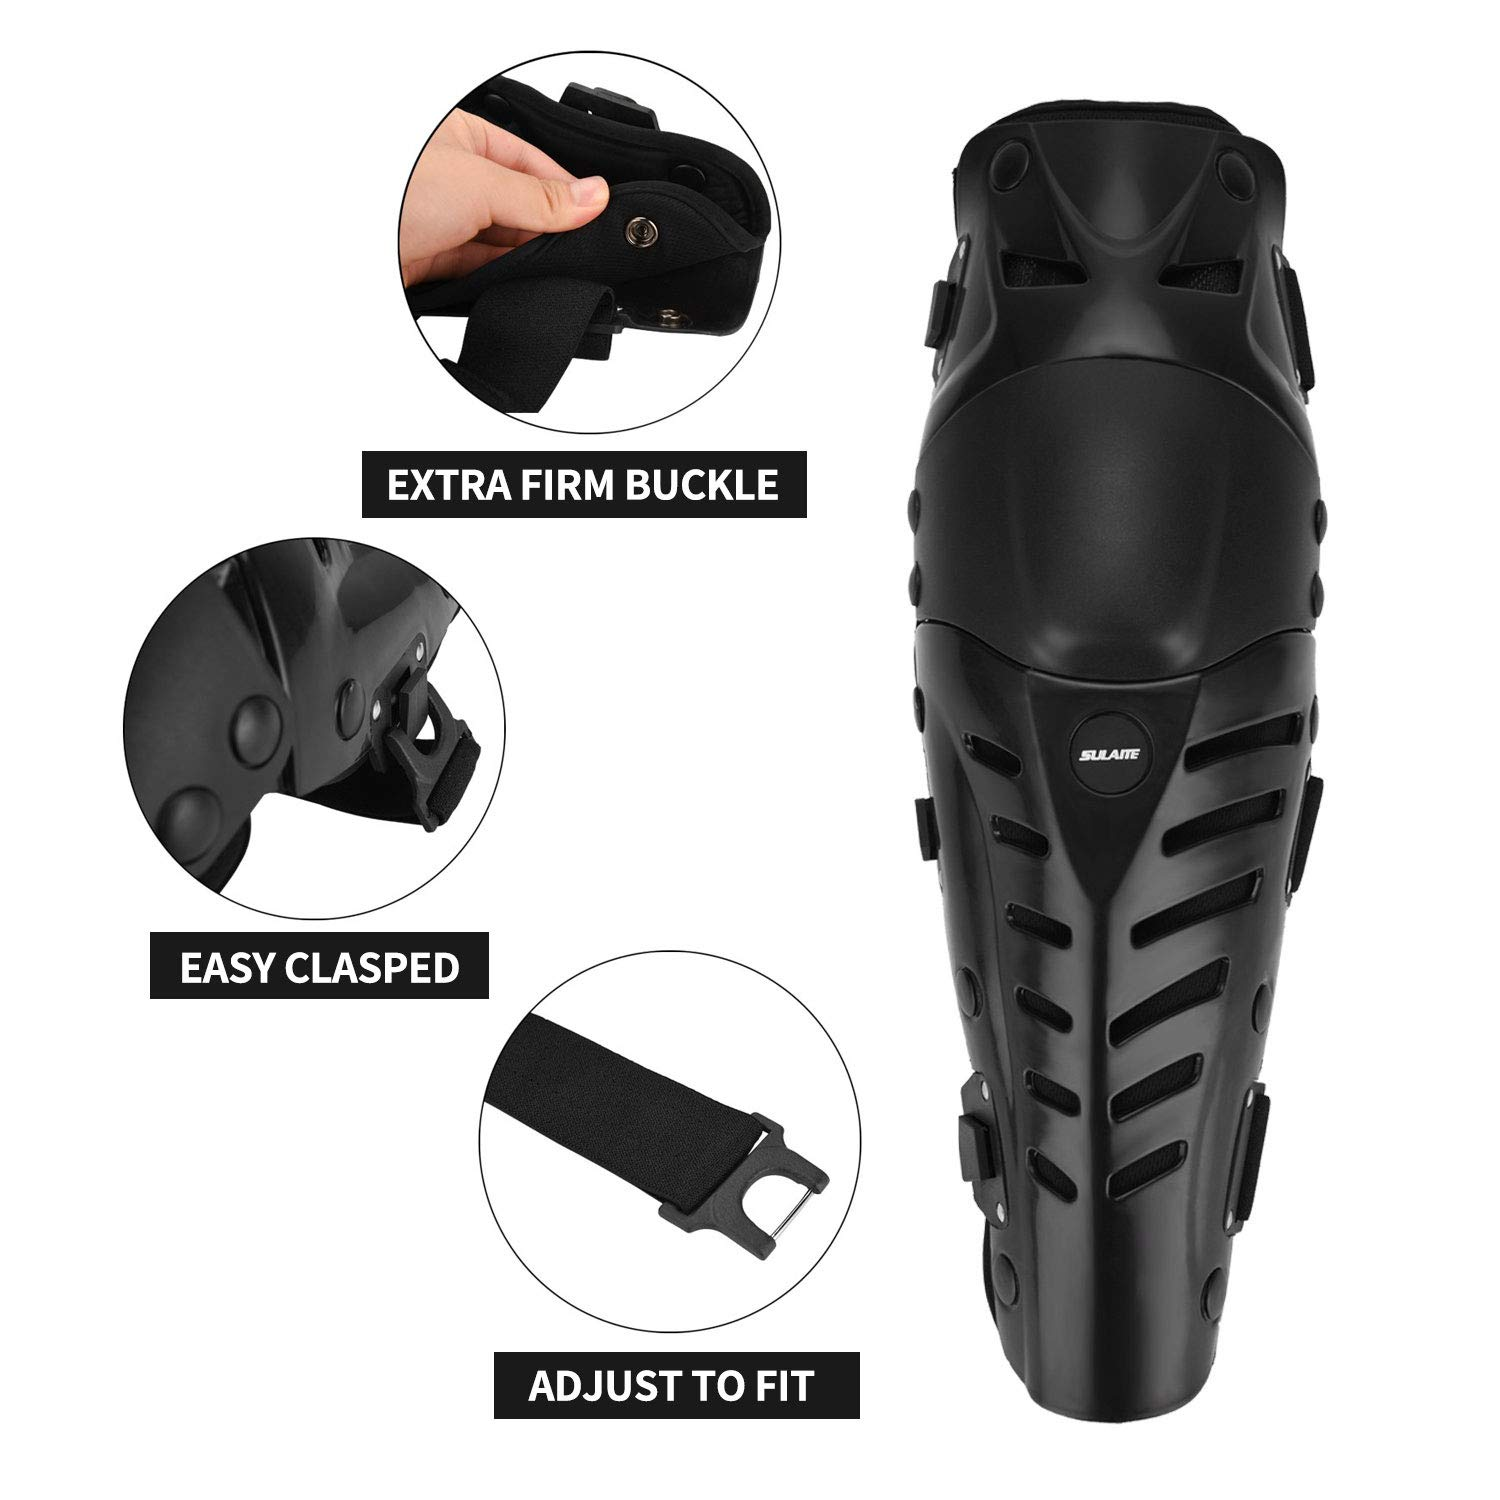 RIDBIKER 1 Pair of Movable Knee Shin Guard Pads Three Sections 2Pcs Breathable Adjustable Knee Cap Pads Protector Armor for Motorcycle Cycling Racing